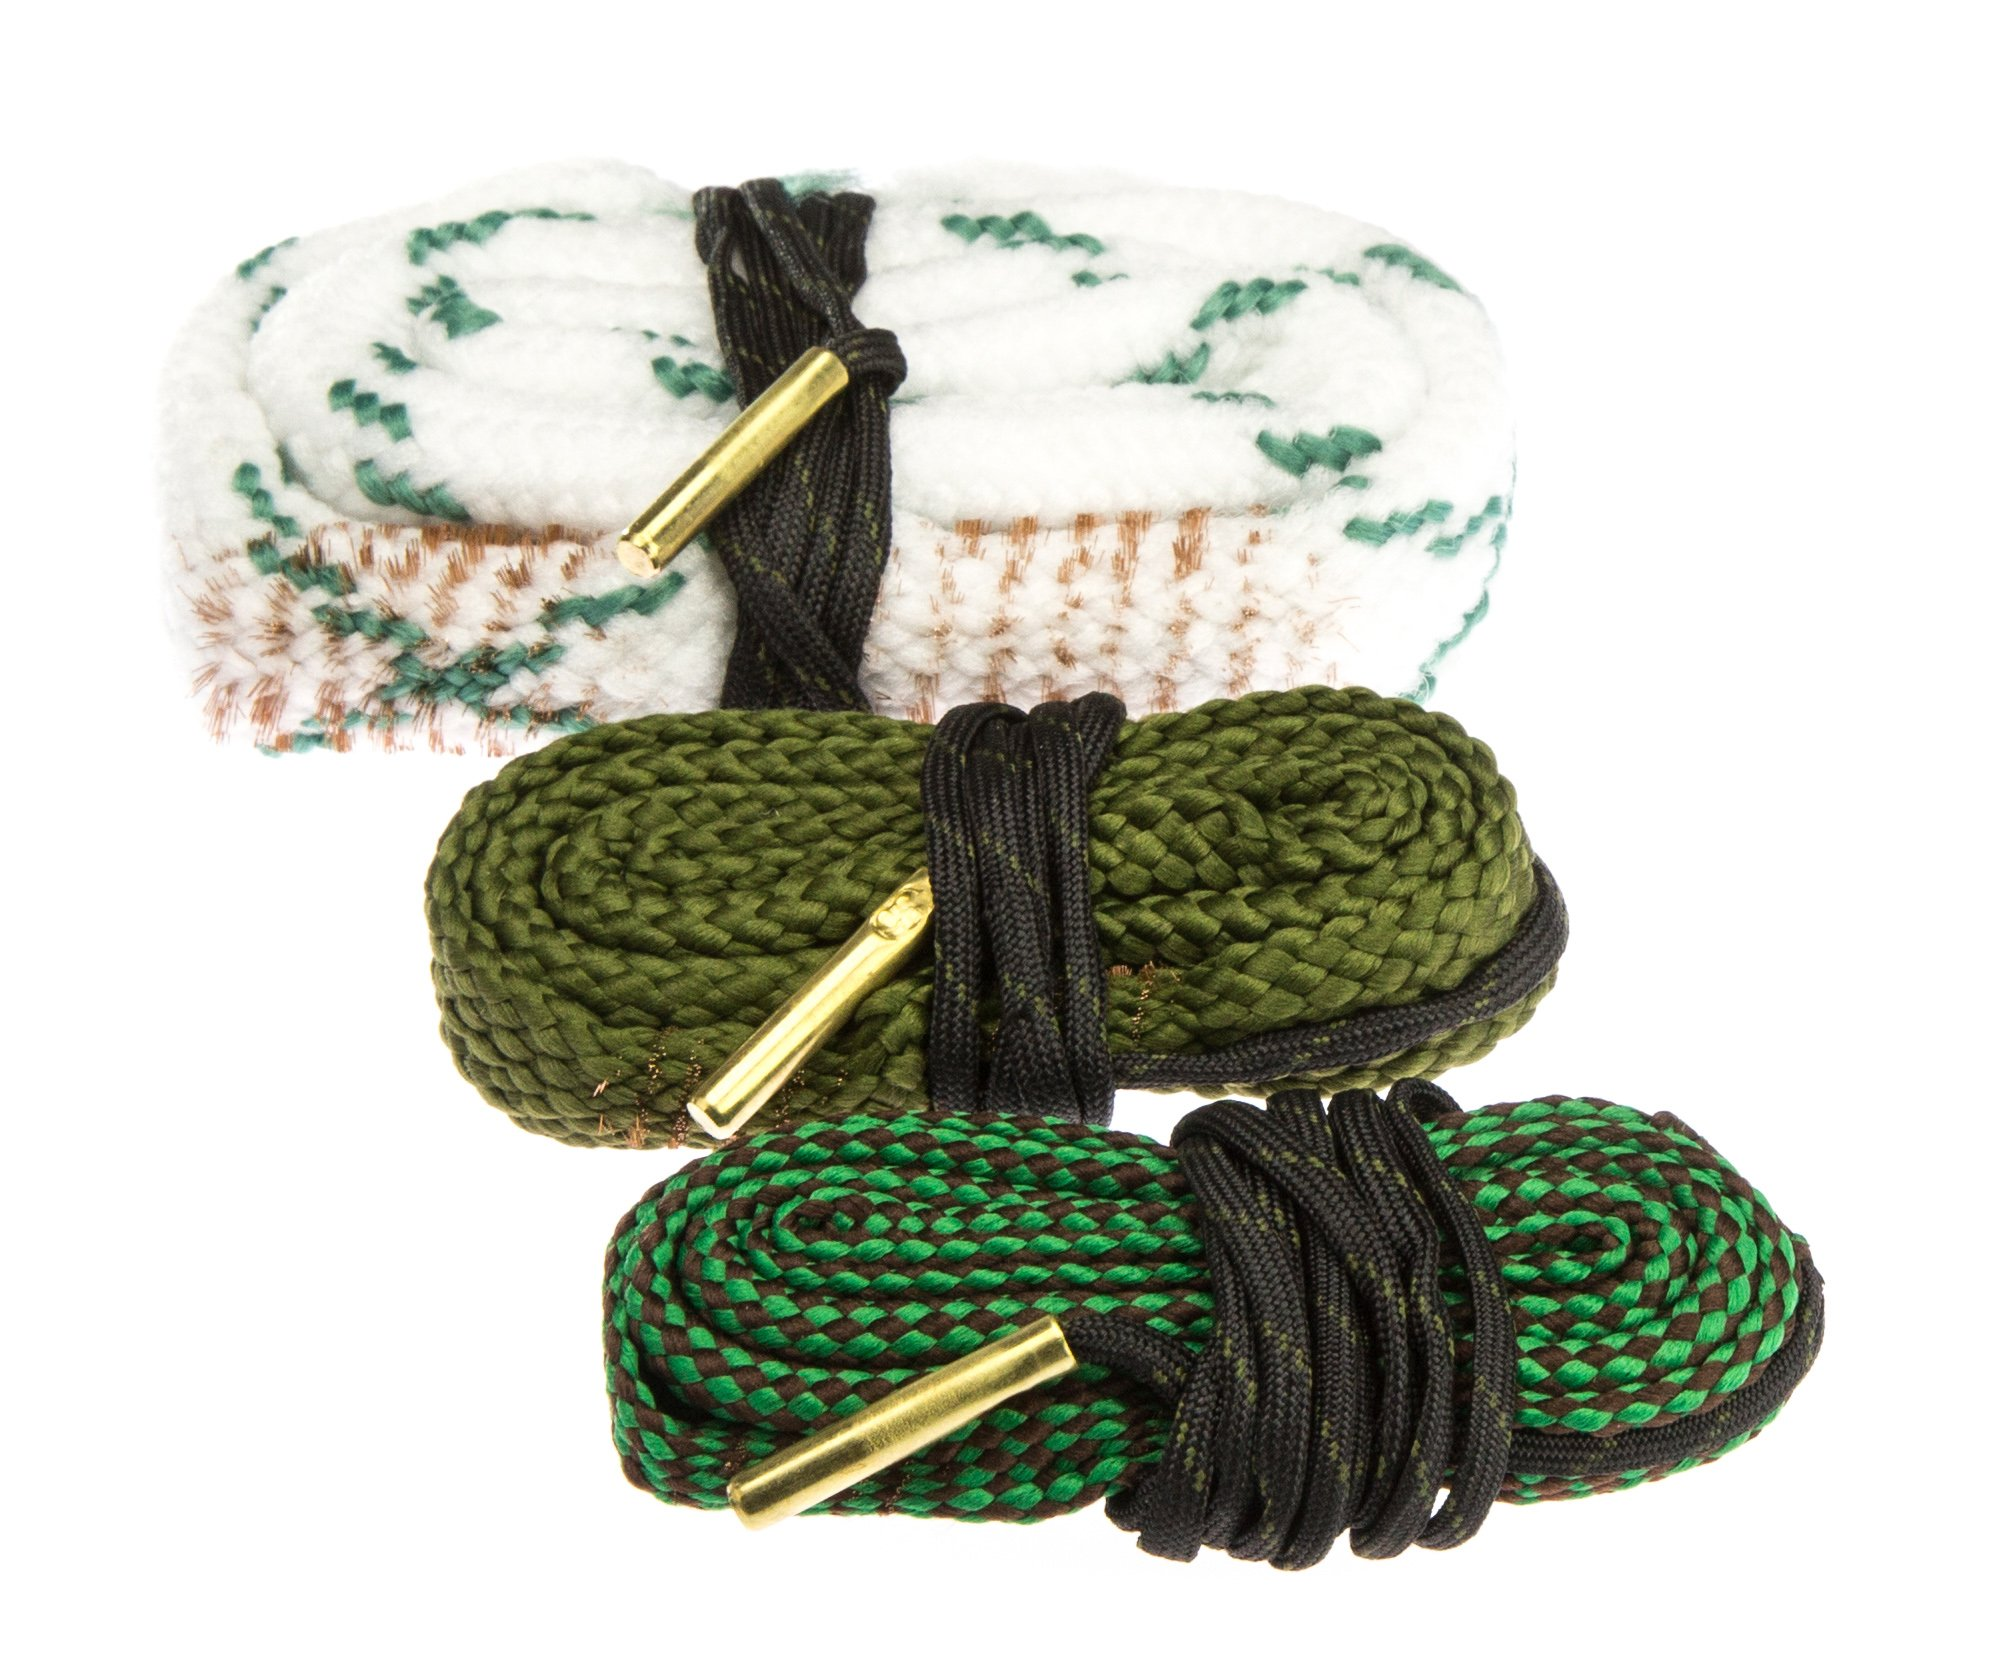 Ultimate 3-Gun Competition Bore Cleaner Combo Kit - includes 12GA, .223 and 9mm bore cleaners by Ultimate Rifle Build